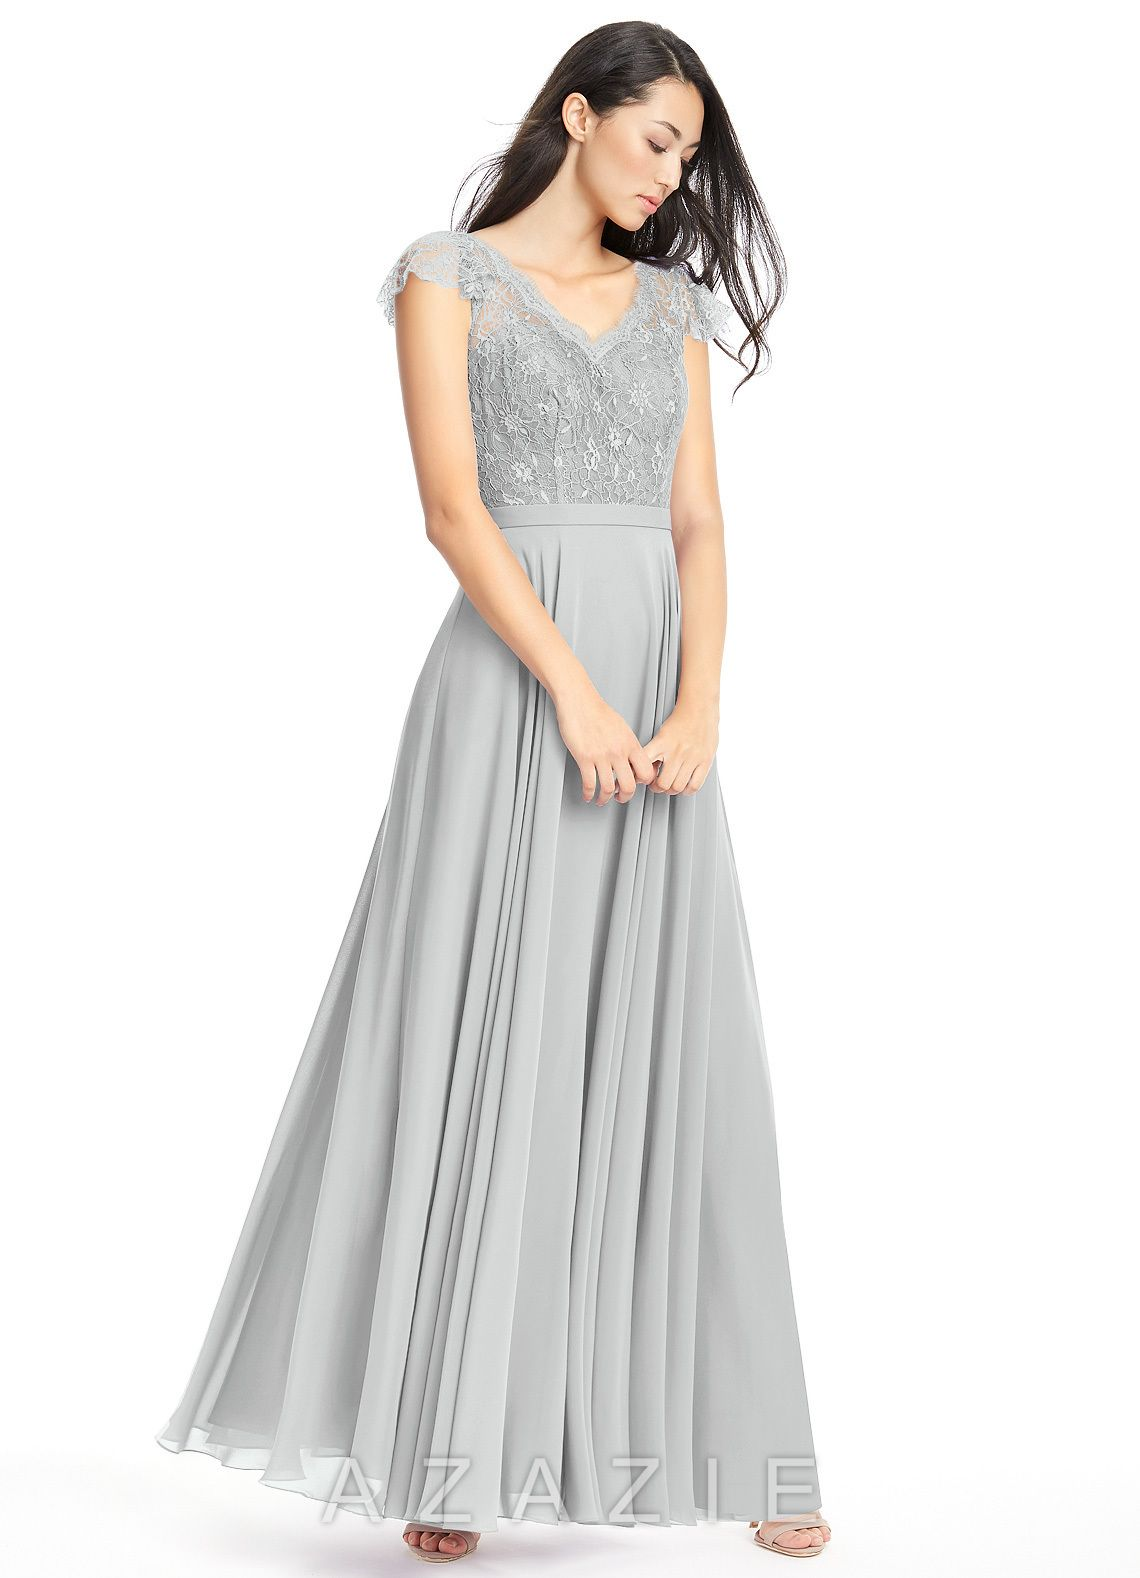 Shop Azazie Bridesmaid Dress - Cheryl in Chiffon. Find the perfect made-to-order bridesmaid dresses for your bridal party in your favorite color, style and fabric at Azazie.